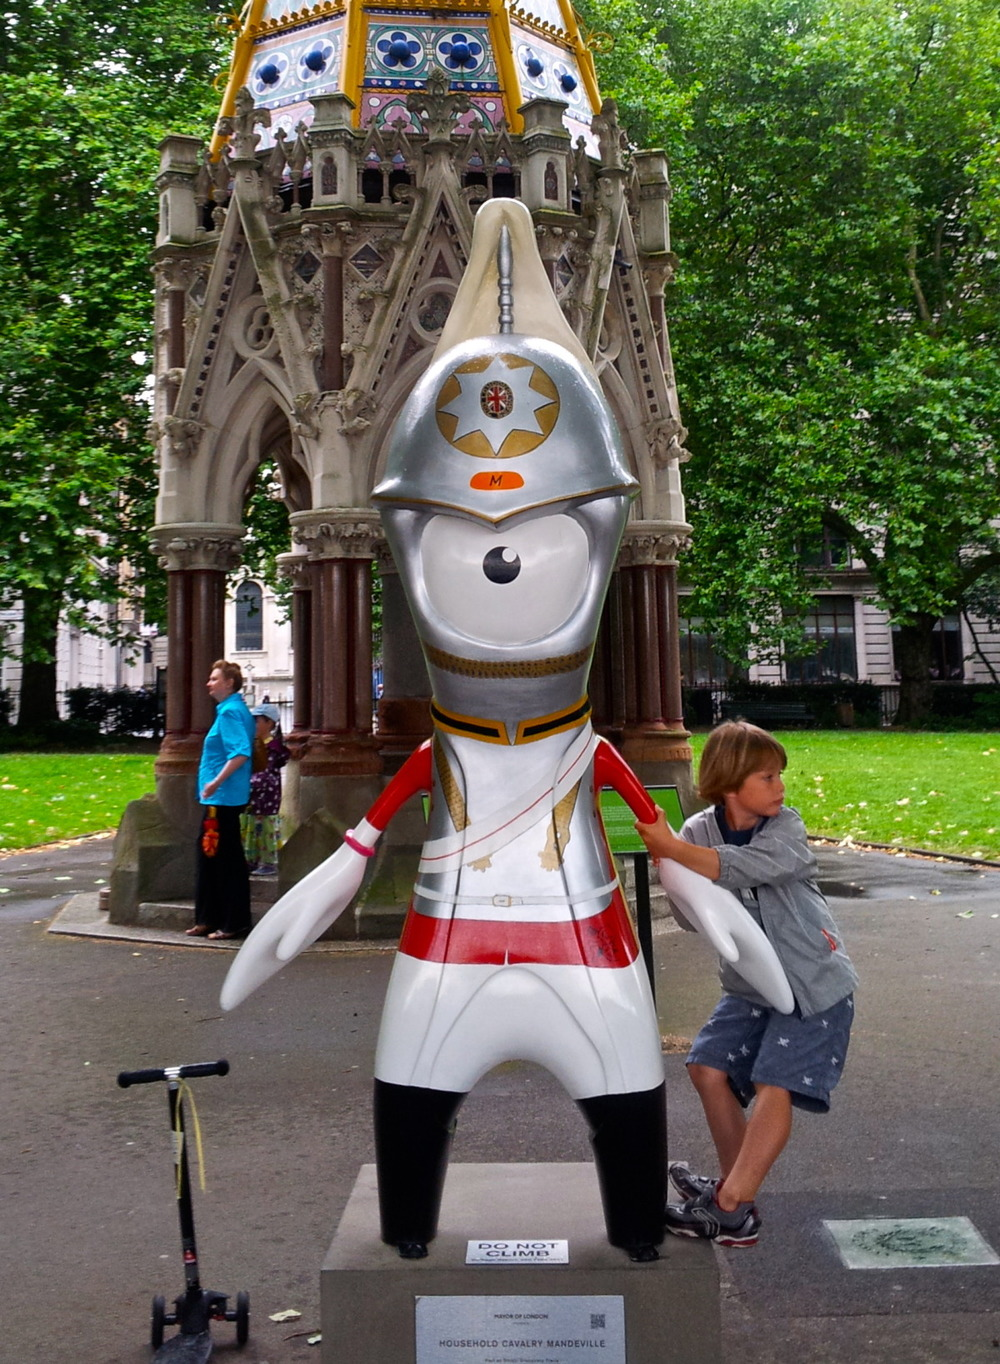 Household Cavalry Mandeville